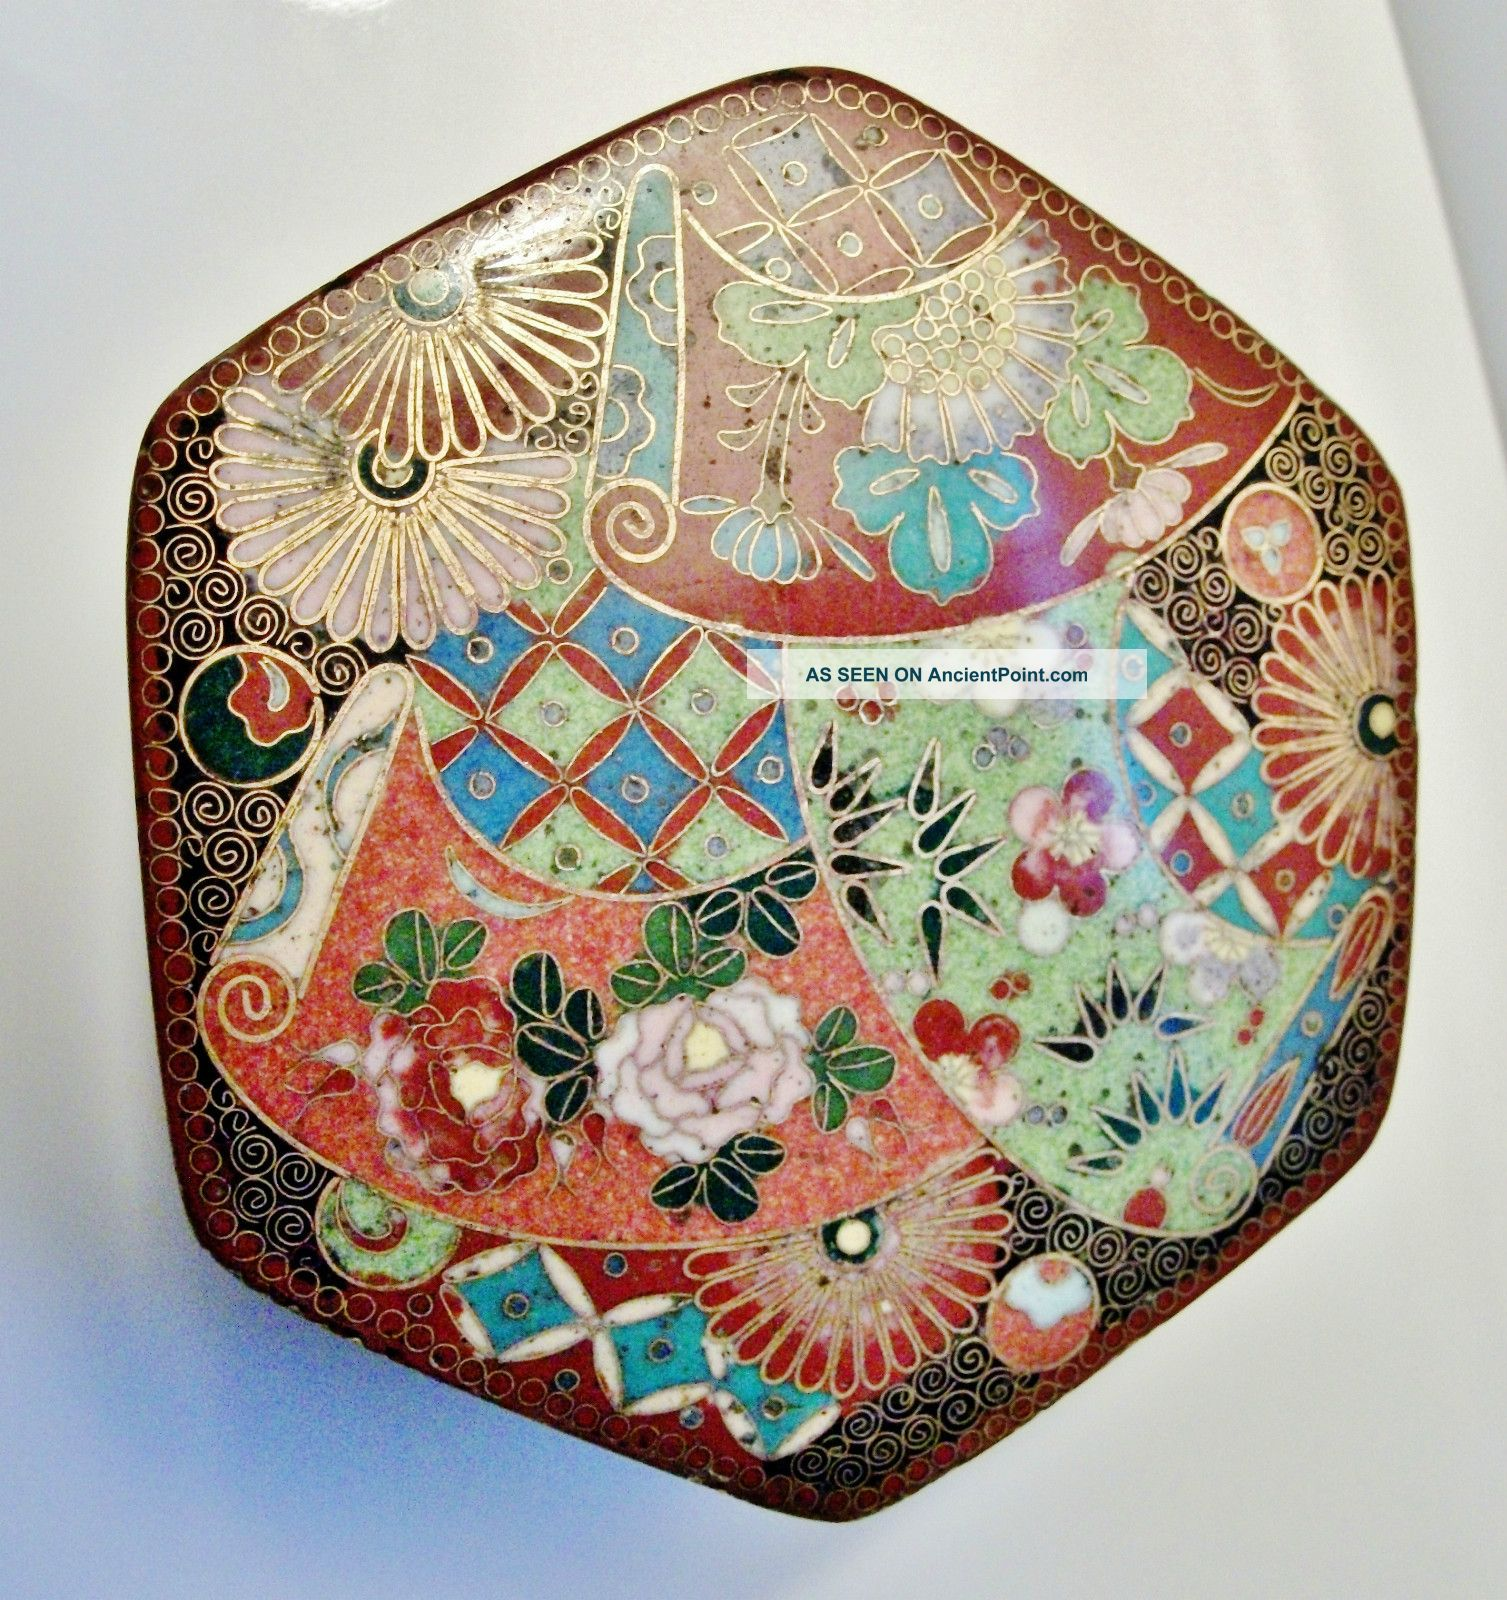 Chinese Antique Cloisonne Box - Excellent Craftsmanship - High Quality Art Boxes photo